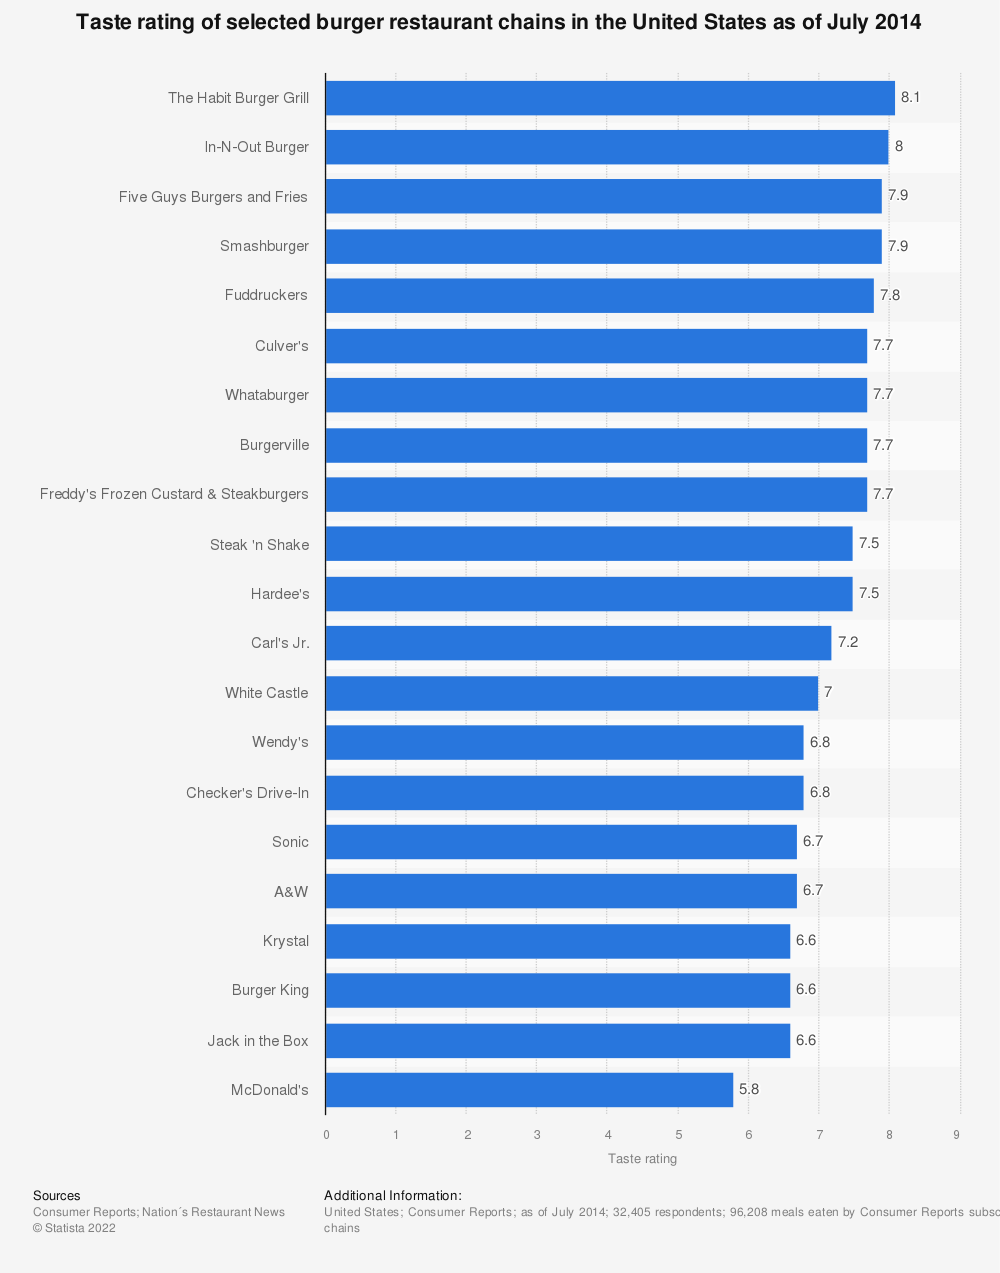 Statistic: Taste rating of selected burger restaurant chains in the United States as of July 2014 | Statista